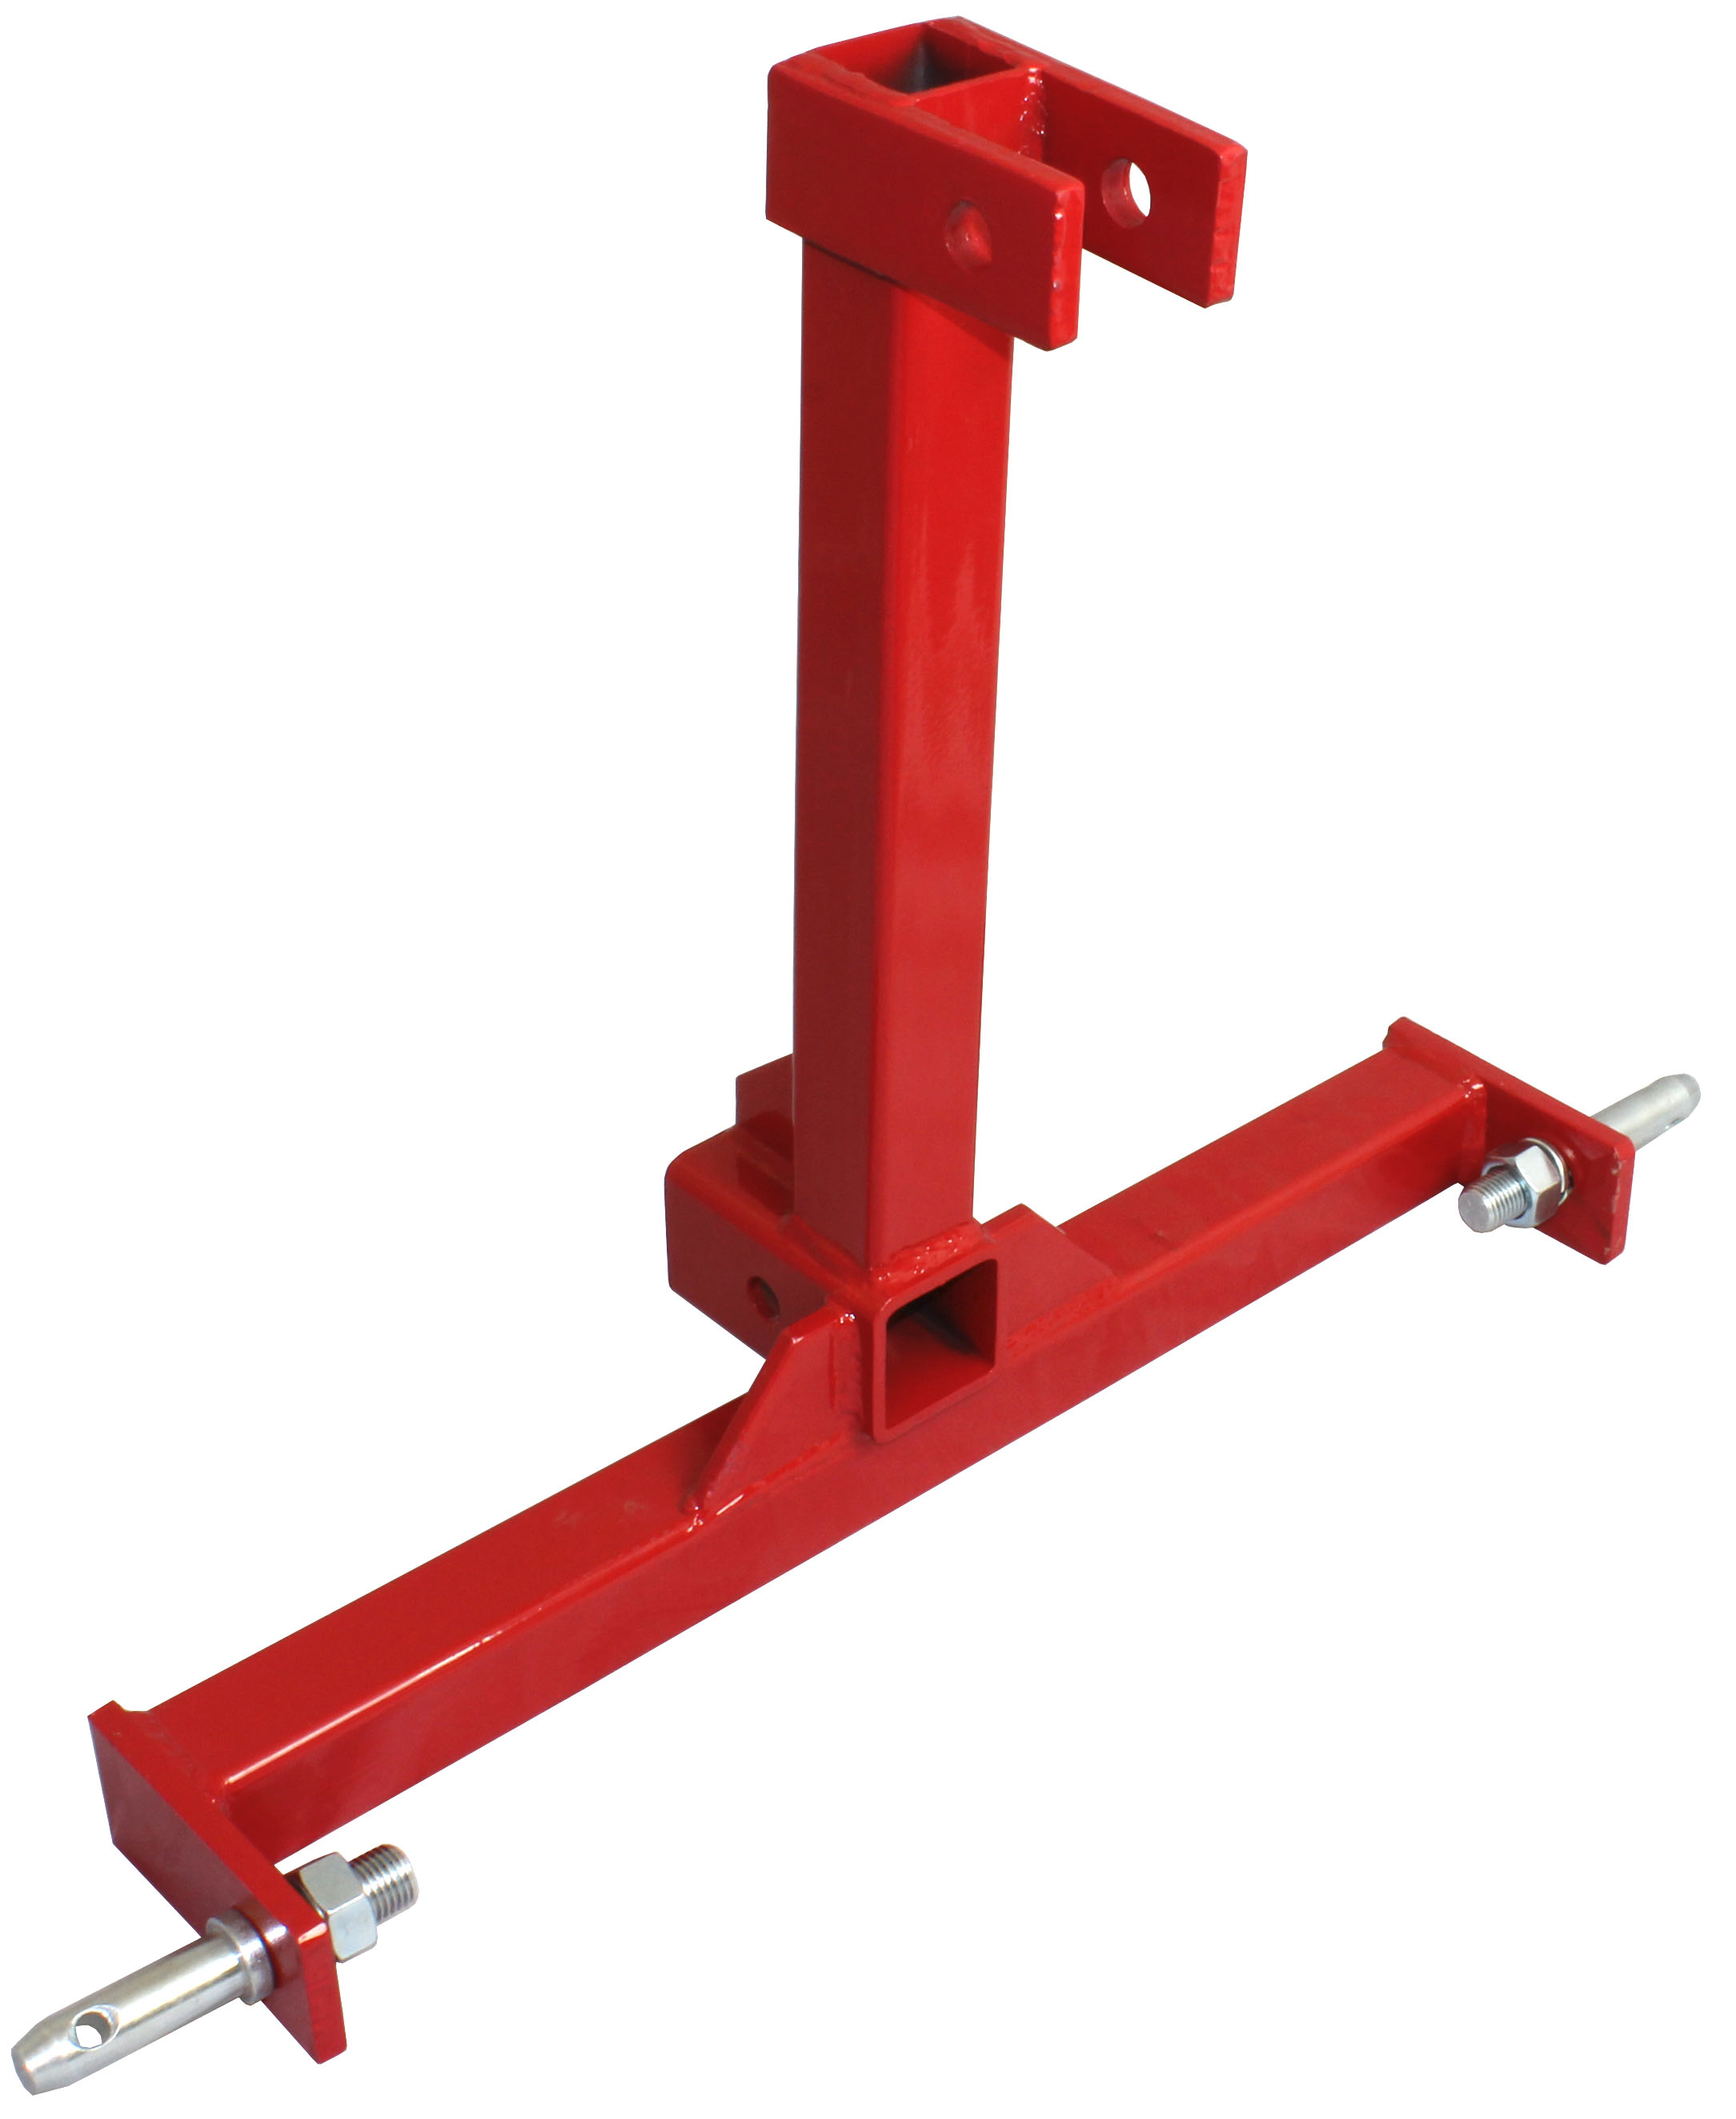 Tractor 3 Point Hitch Dimensions : Features